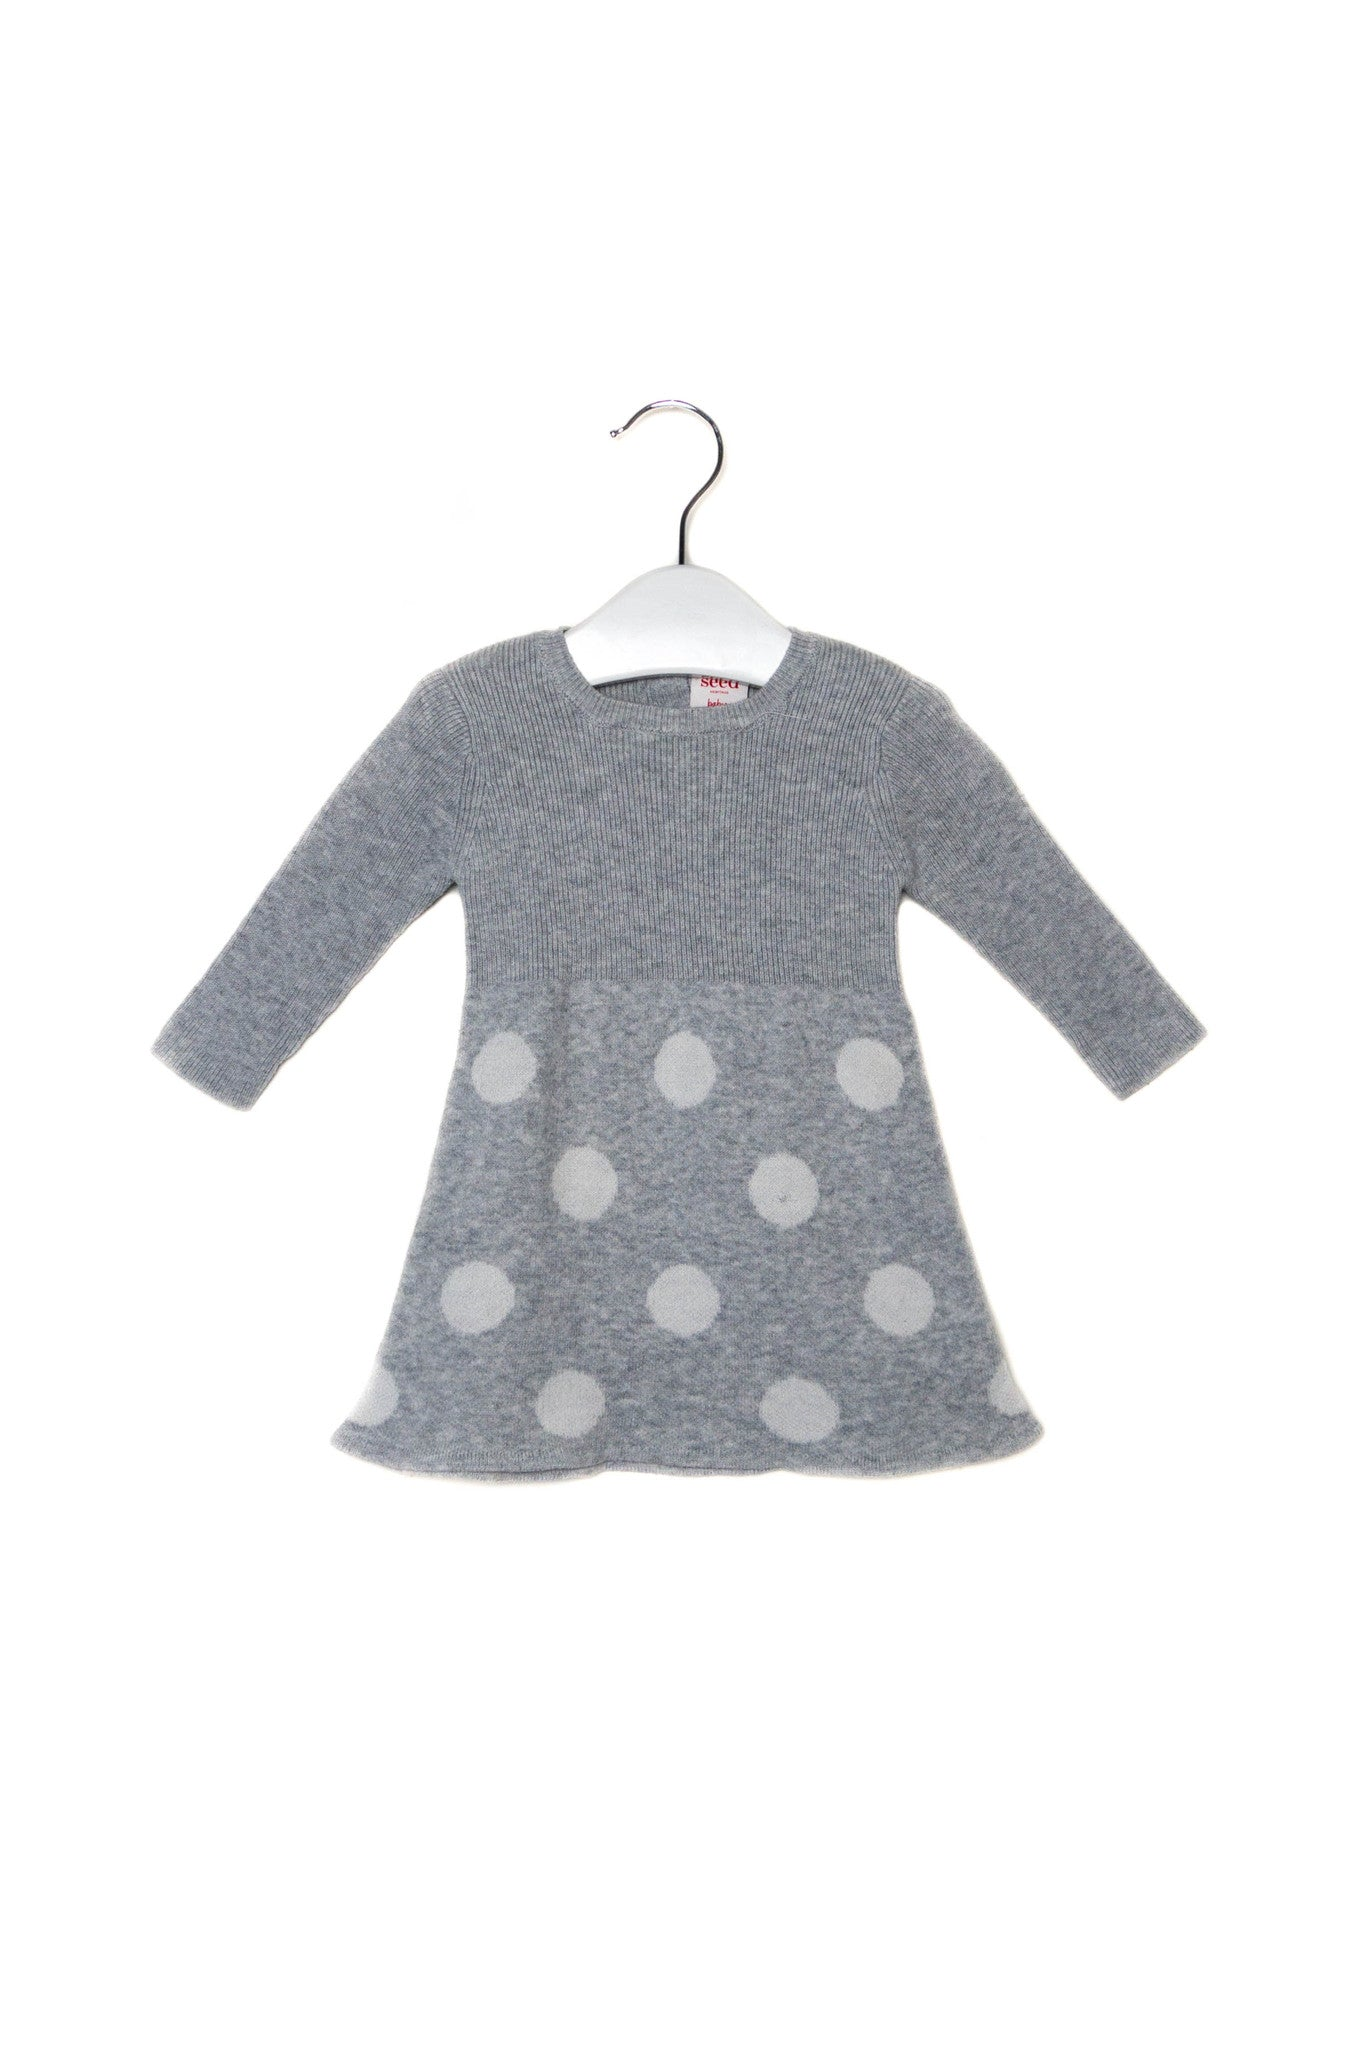 10002254 Seed Baby~Dress 0-3M at Retykle